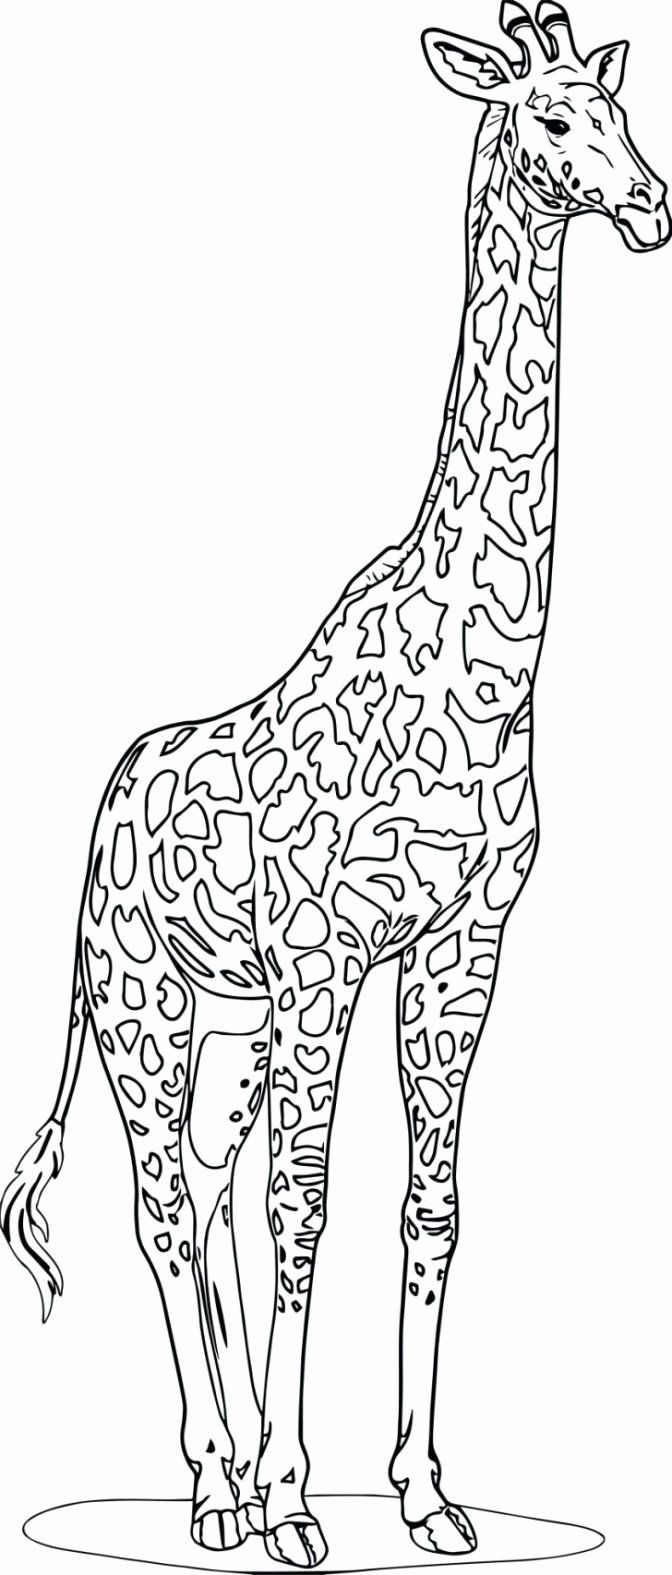 Realistic Animals Coloring Pages Best Of Coloring Printable Animalring Pages Easy Farm R In 2020 Zoo Animal Coloring Pages Giraffe Coloring Pages Animal Coloring Pages